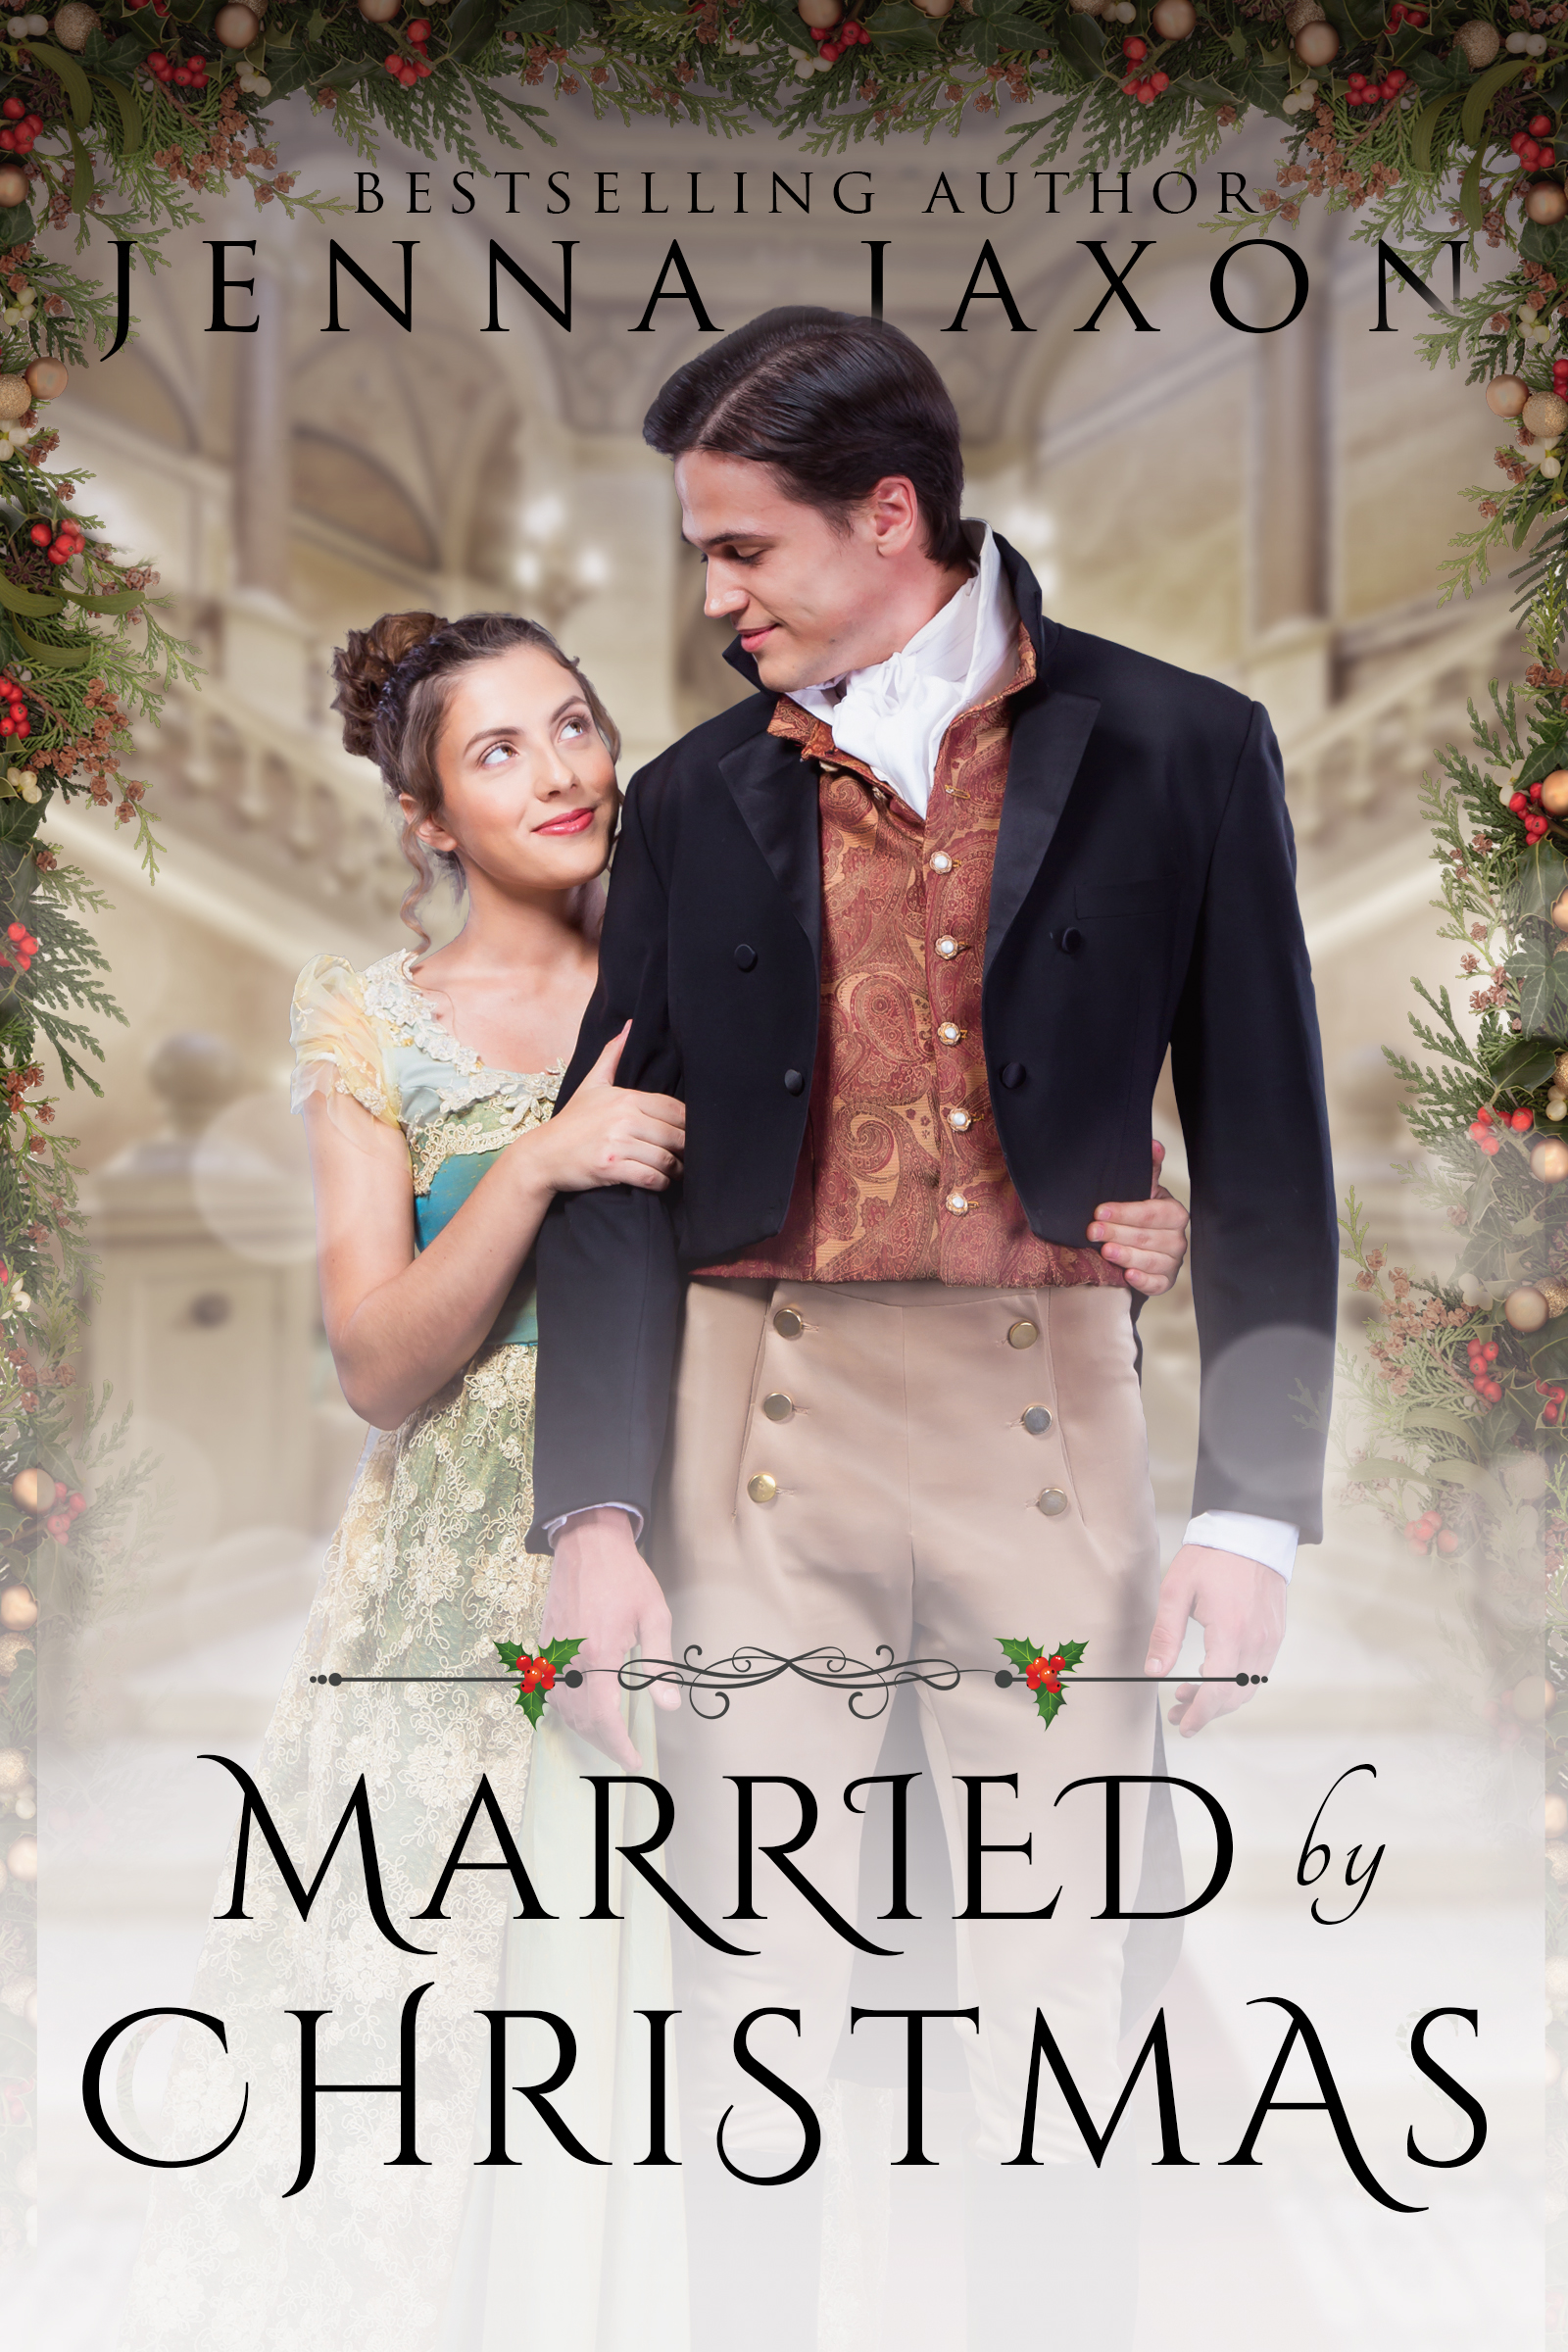 Married By Christmas.Married By Christmas An Ebook By Jenna Jaxon